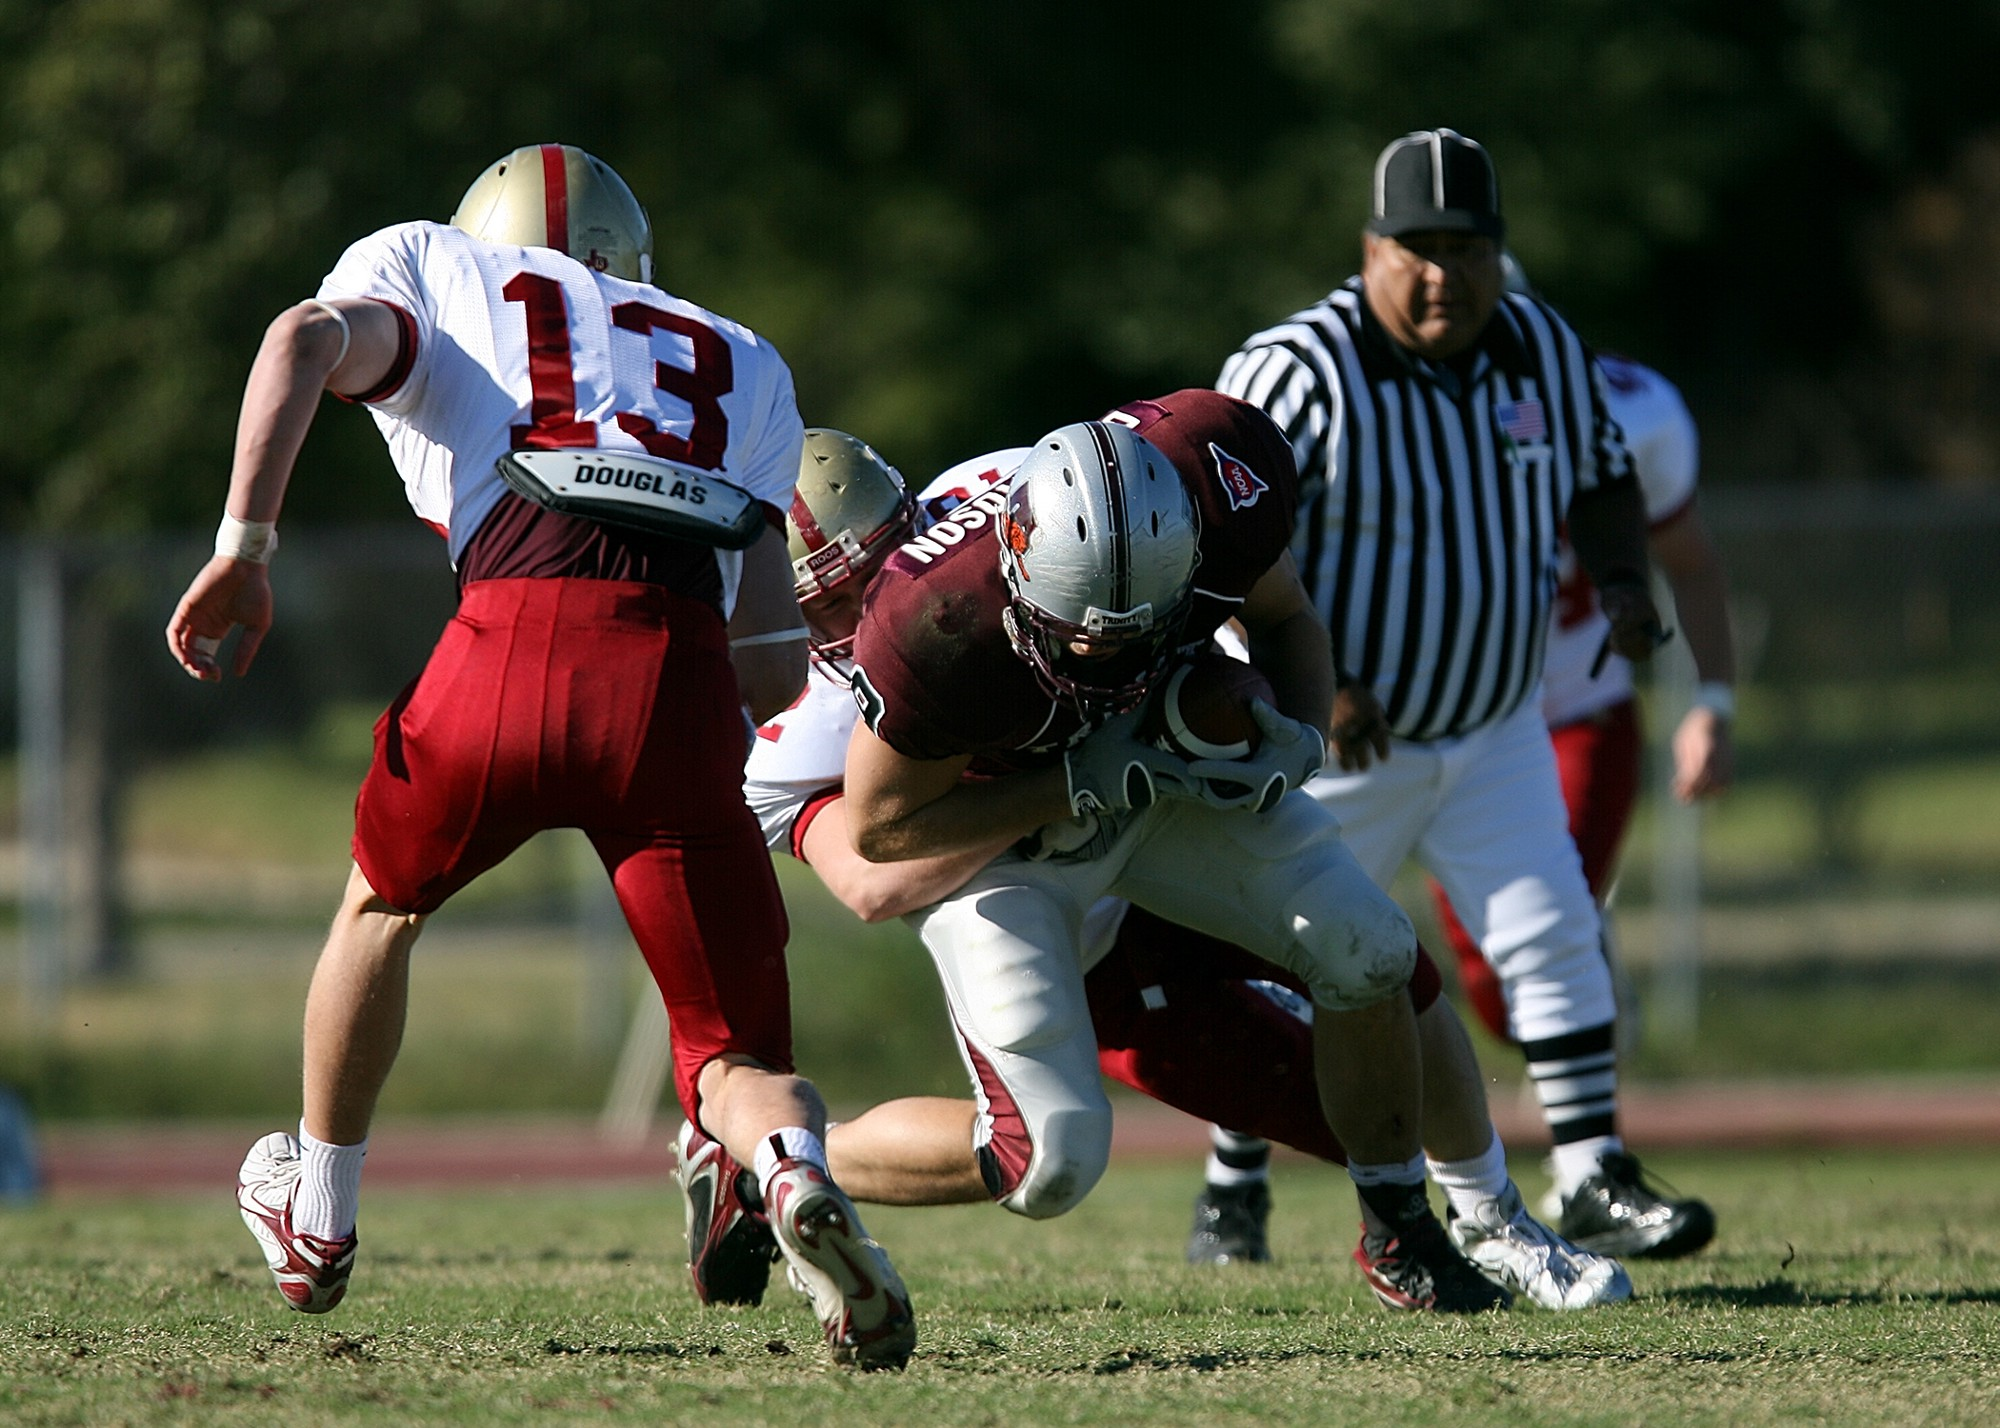 Football player being tackled.